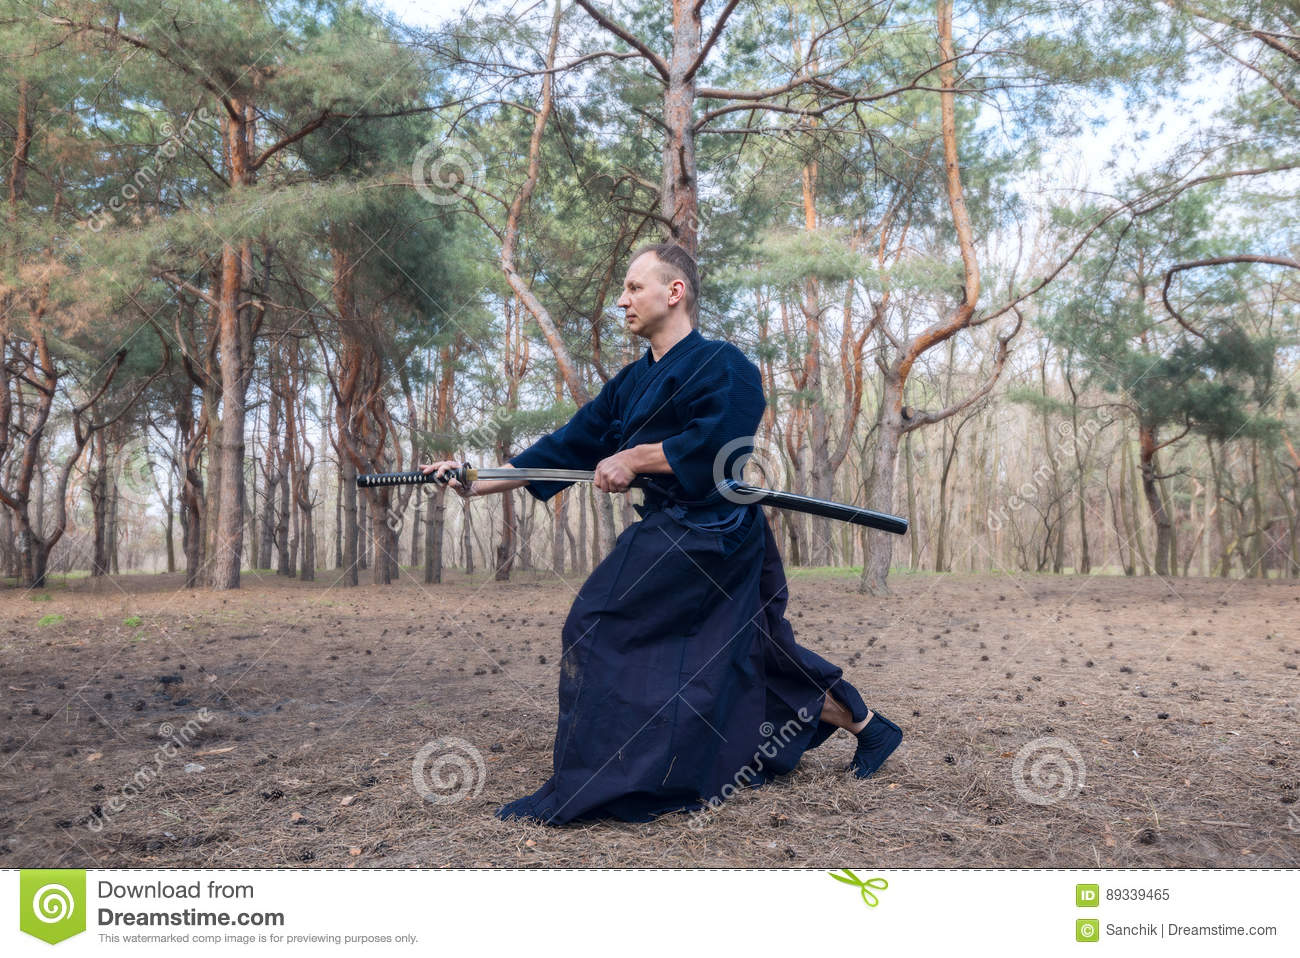 Caucasian Man With A Japanese Sword, A Katana Practicing